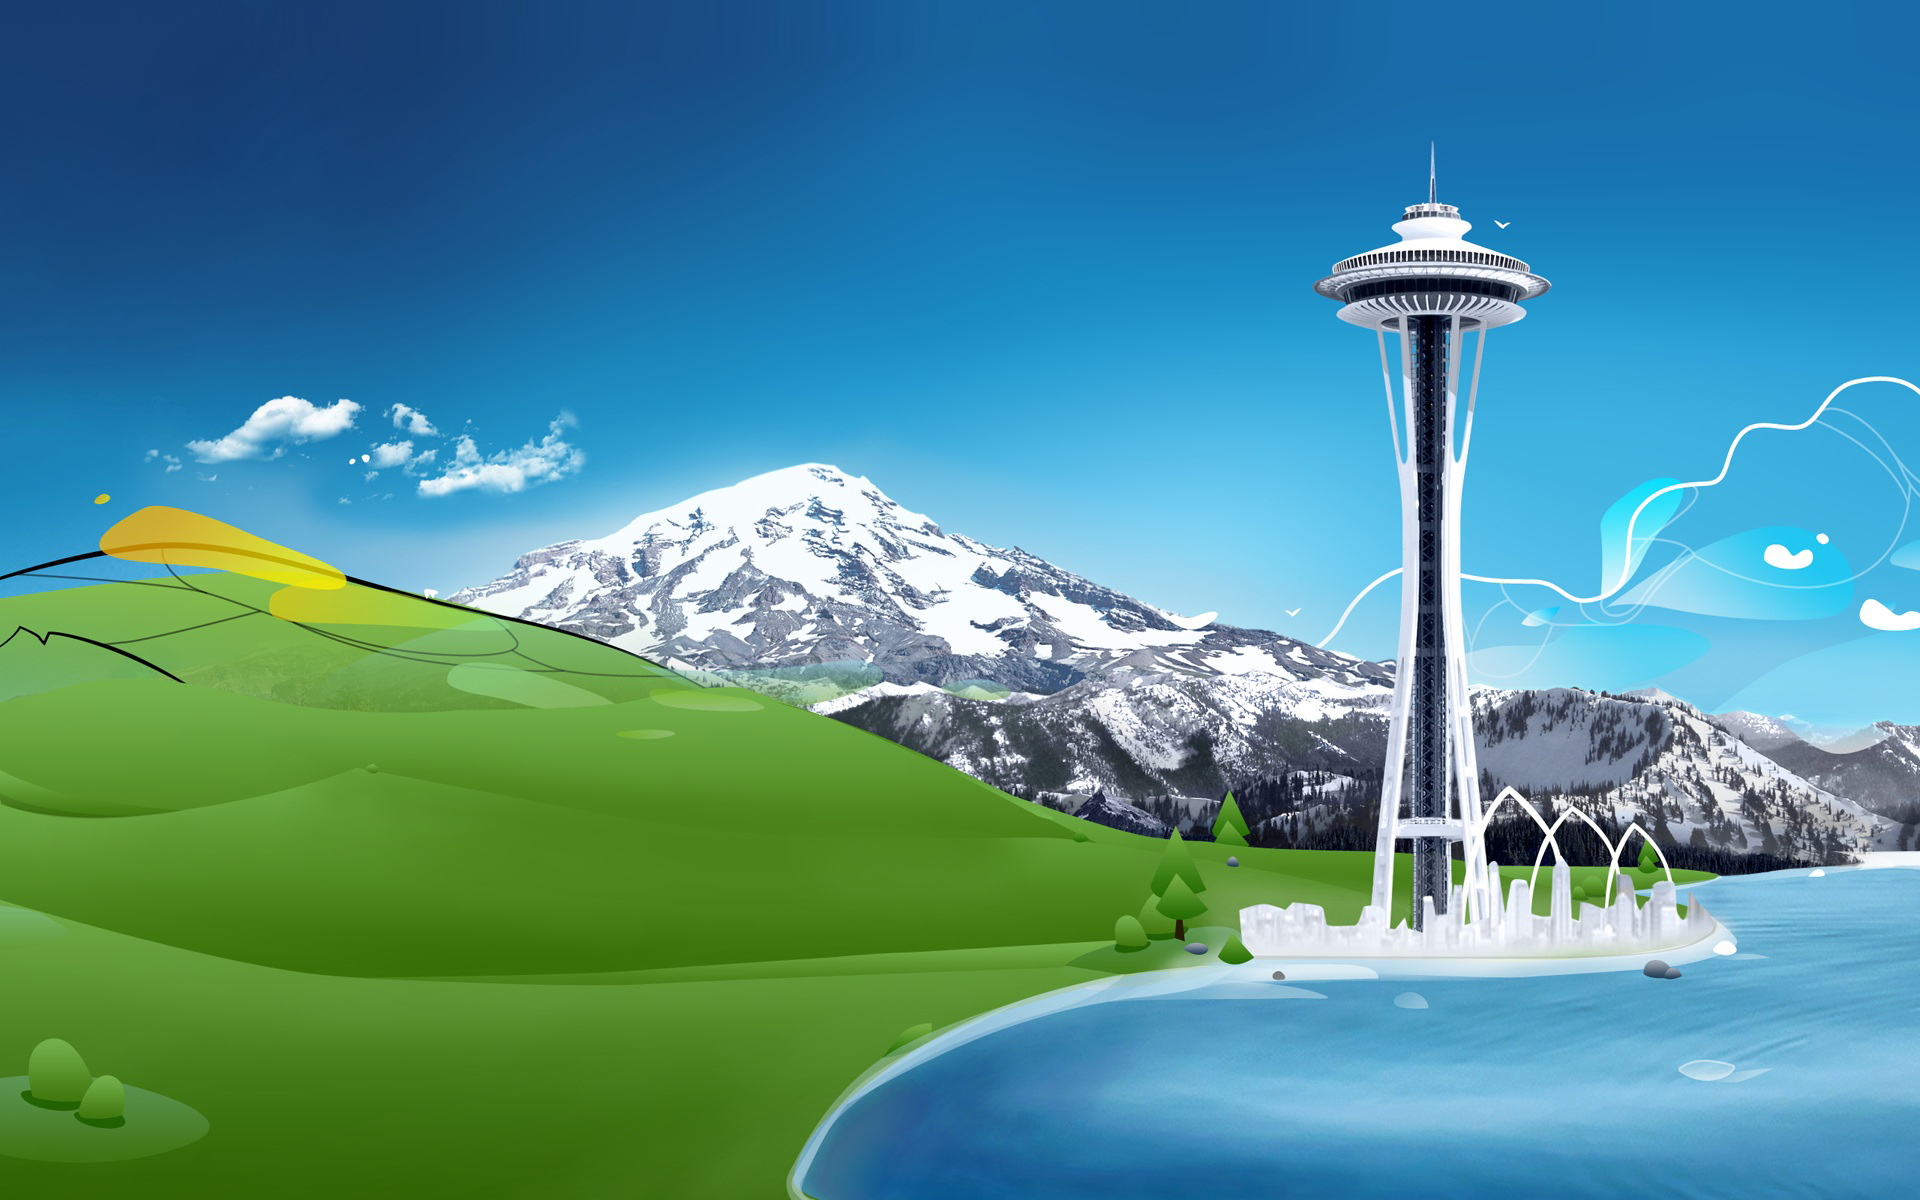 Windows 8 Seattle Desktop and mobile wallpaper Wallippo 1920x1200